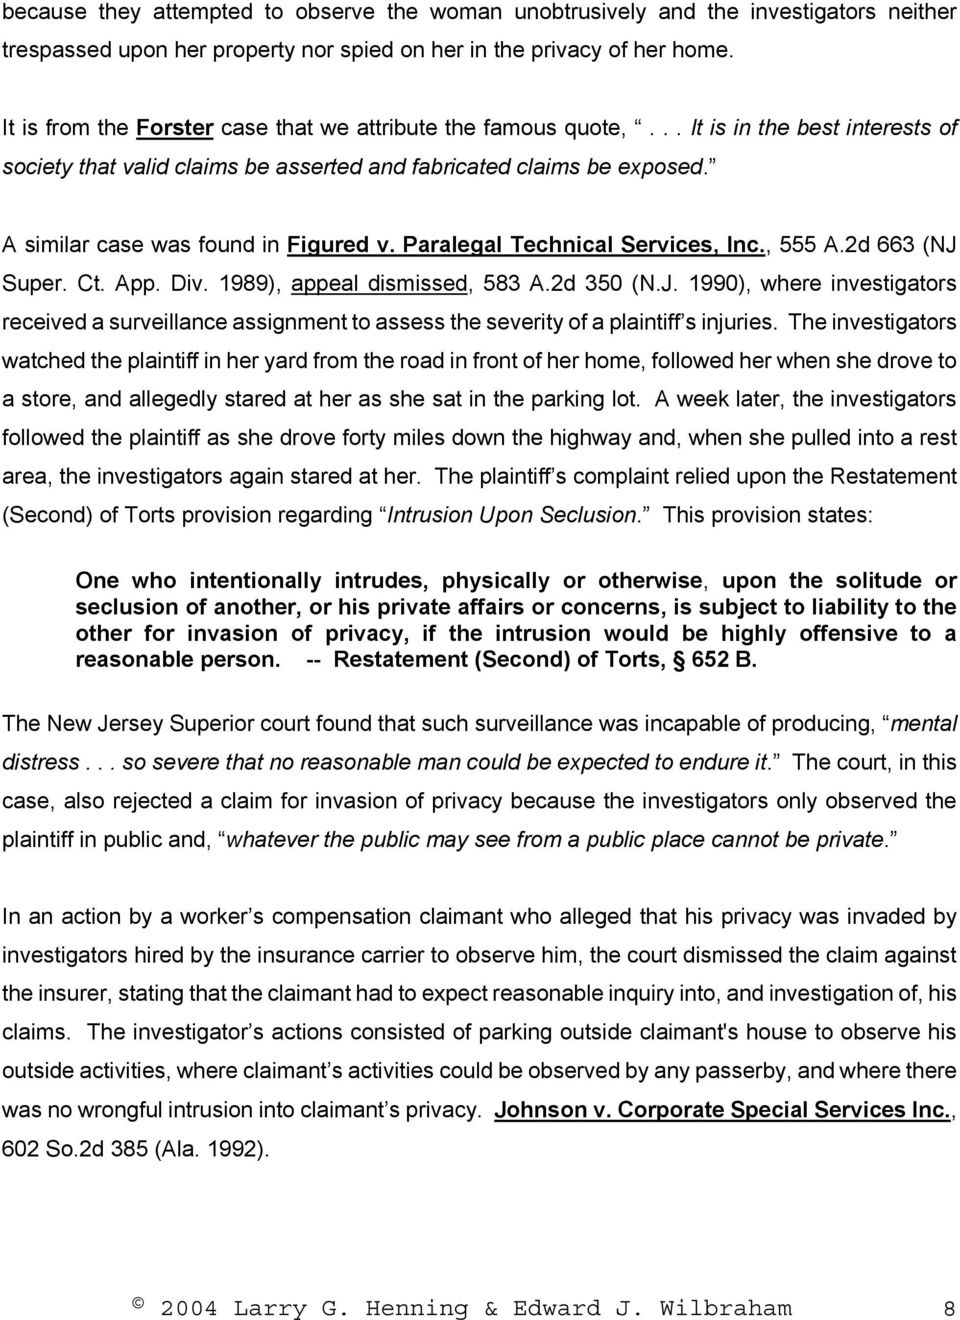 A similar case was found in Figured v. Paralegal Technical Services, Inc., 555 A.2d 663 (NJ